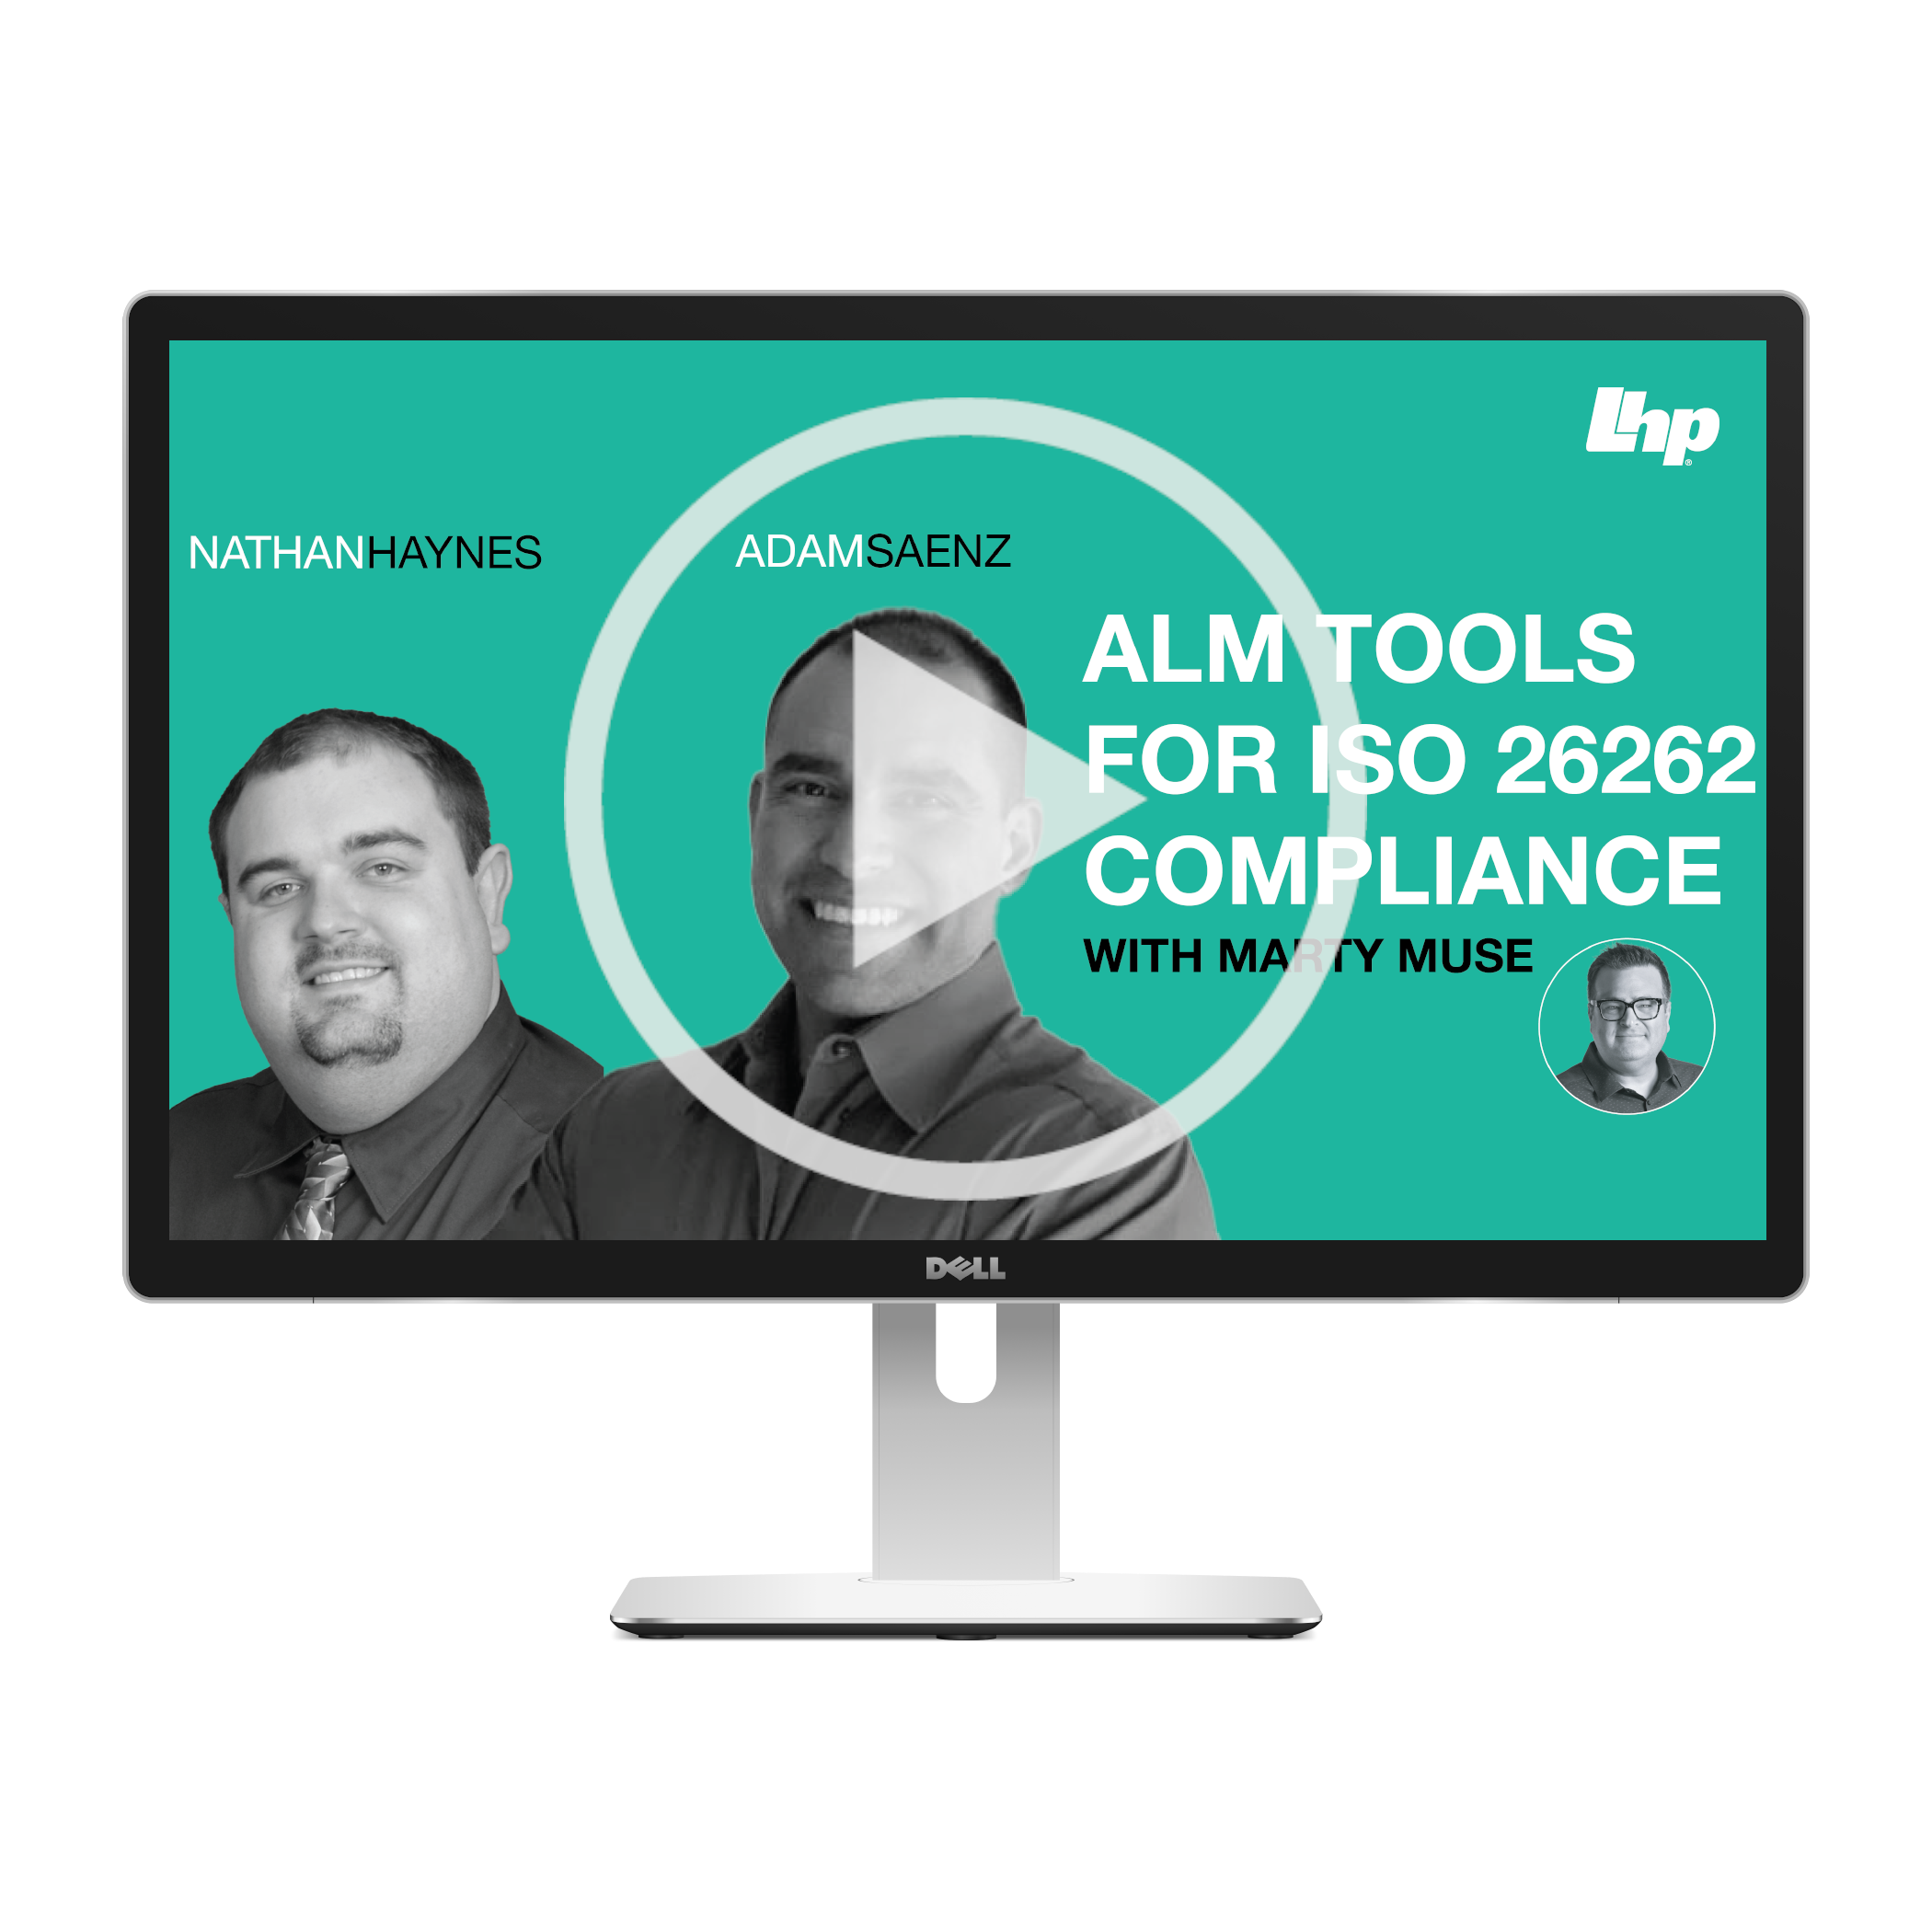 ALM Tools for ISO 26262 Compliance